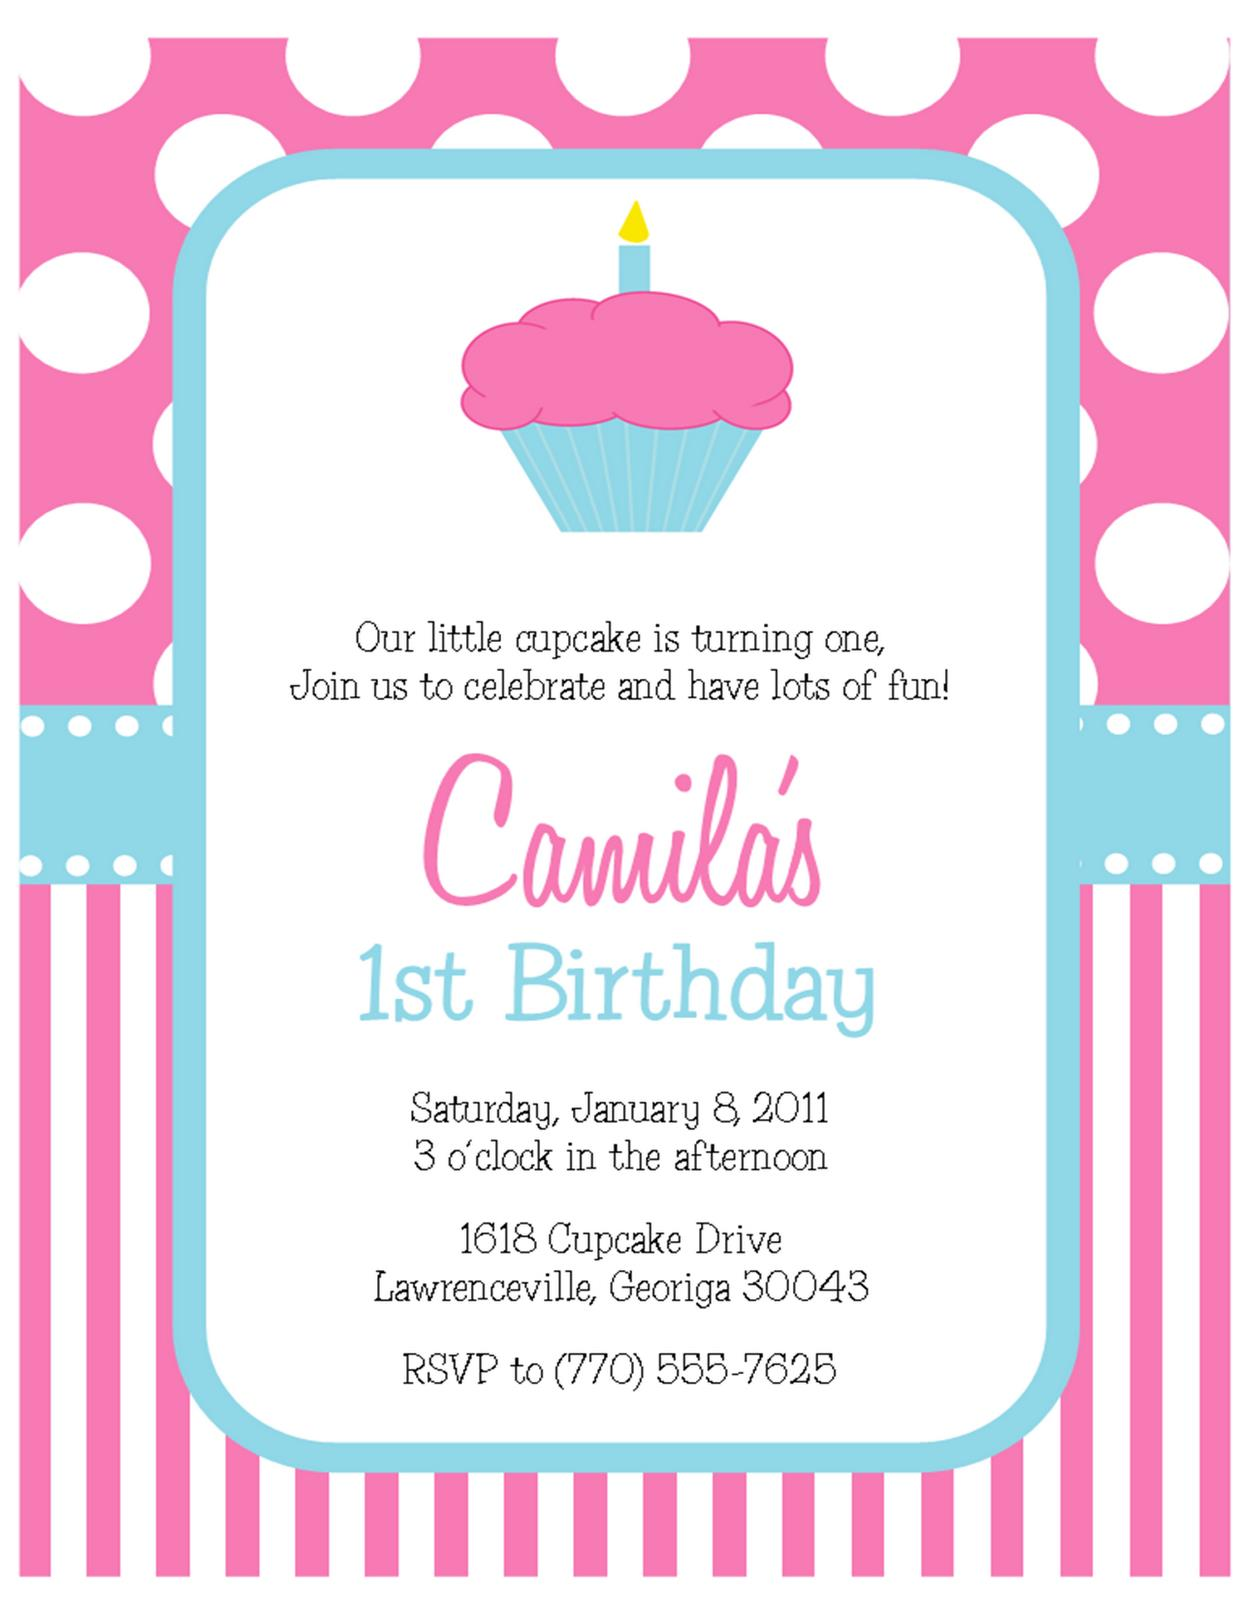 cupcake themed birthday party invitation wording ; Turning-6-Birthday-Invitation-Wording-to-get-ideas-how-to-make-your-own-birthday-Invitation-design-13